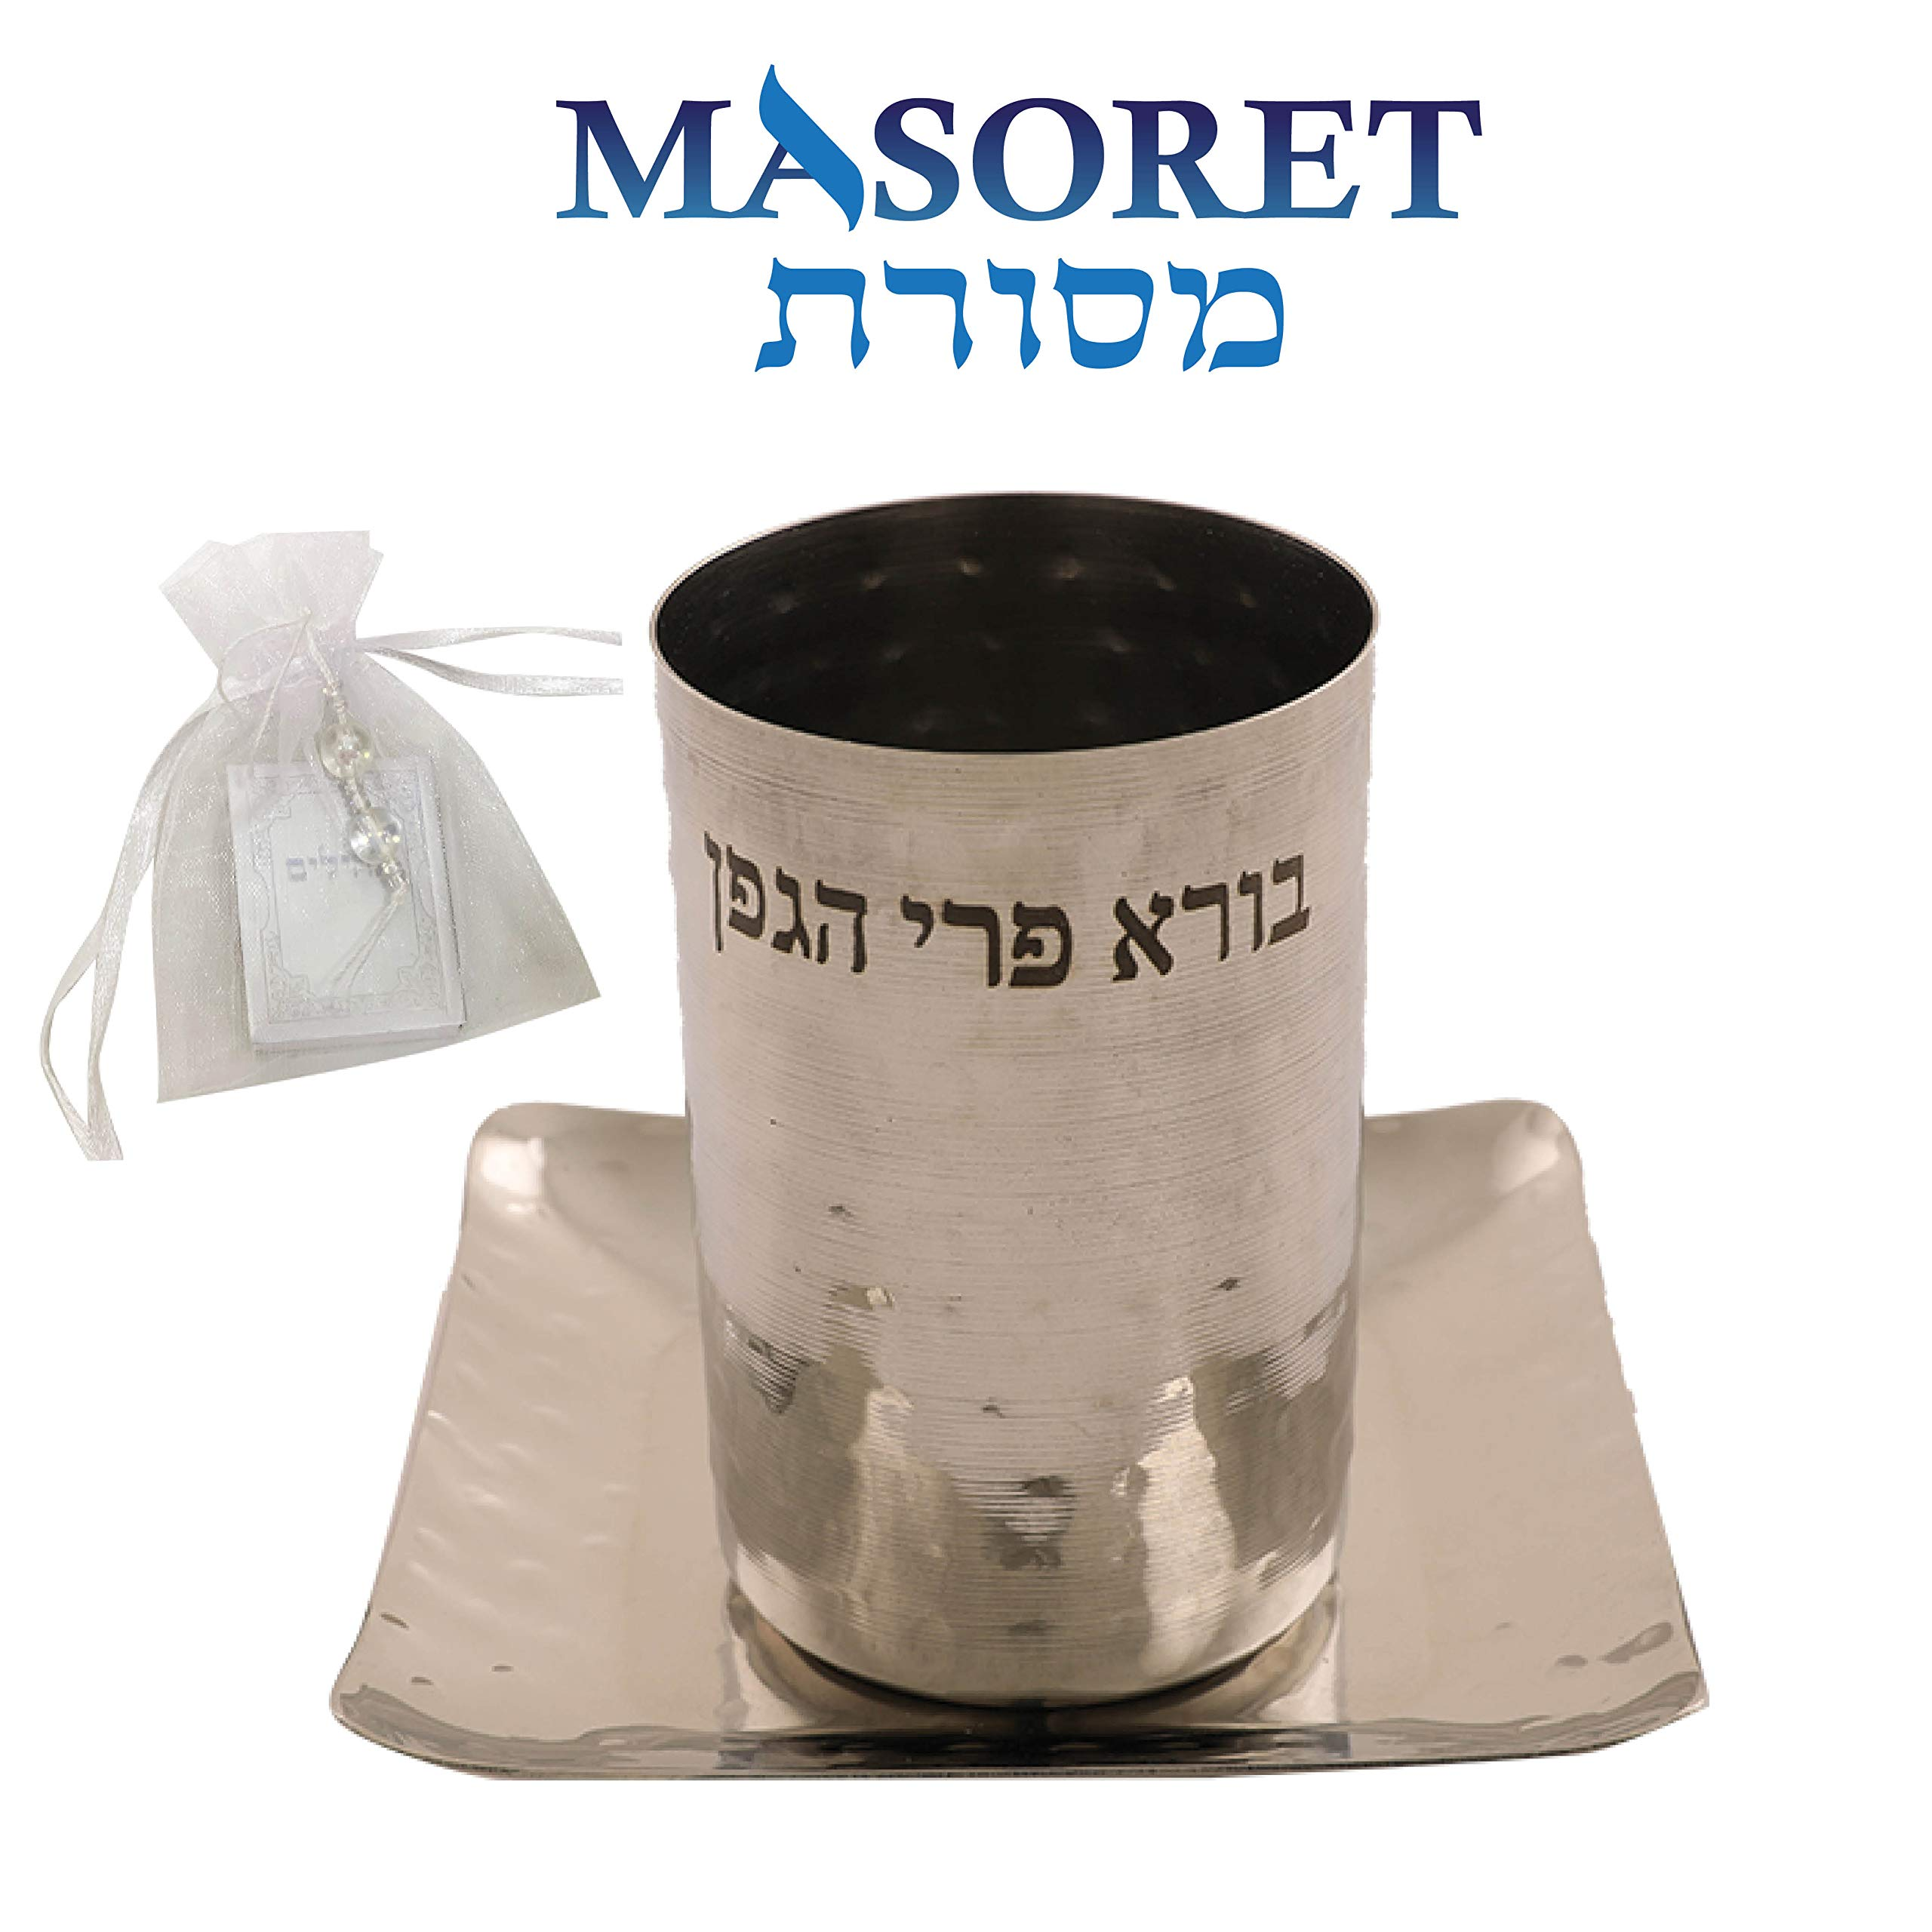 KIDDUSH CUP SET Stainless Steel: 5-Inch Drinking Cup and Saucer for Wine Blessings at Shabbat or Jewish Celebrations plus Mini Tehillim Book